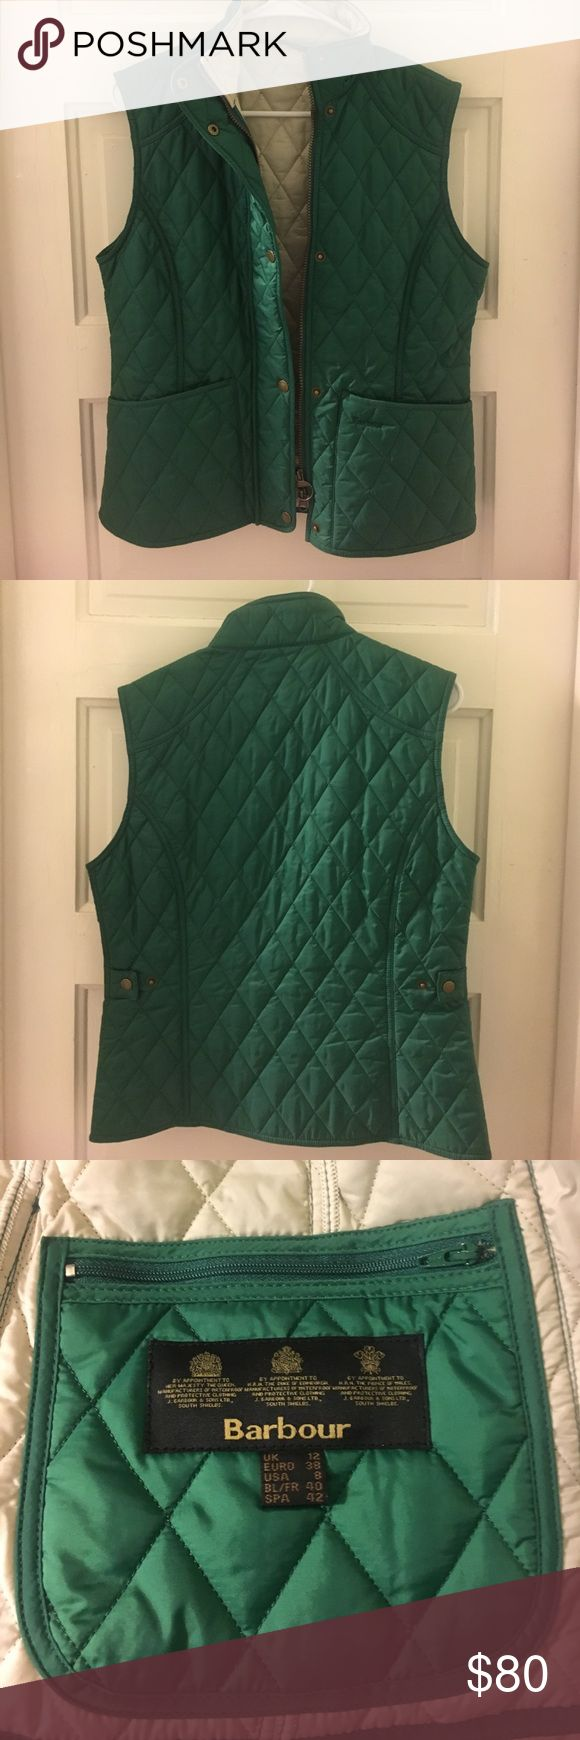 Quilted Barbour Vest Gorgeous green vest in perfect condition! Size 8, fits like a medium. No trades but will consider reasonable offers 😇 Barbour Jackets & Coats Vests